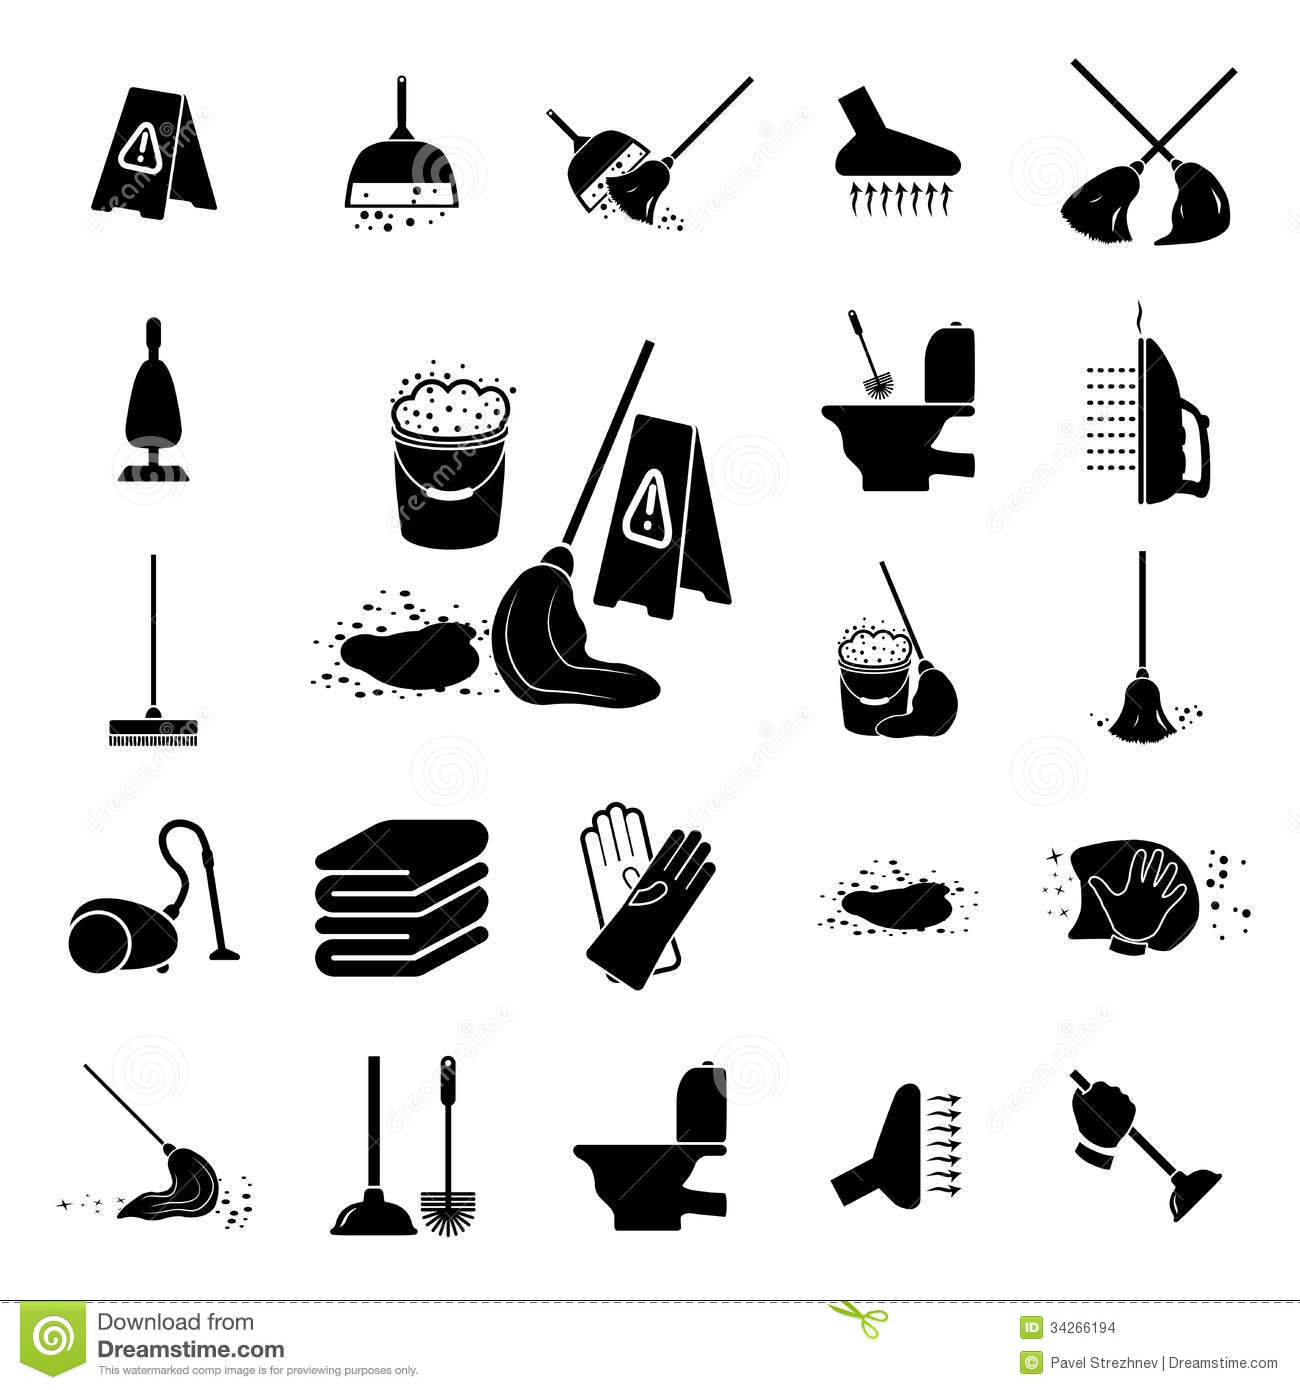 Atmospheric Perspective moreover 245240542 Shutterstock Cleaner Man Working Vector Pictogram moreover Atmospheric Perspective furthermore No P Trap For New Shower Contractor Says Ok moreover Cleaning. on a dirty mop